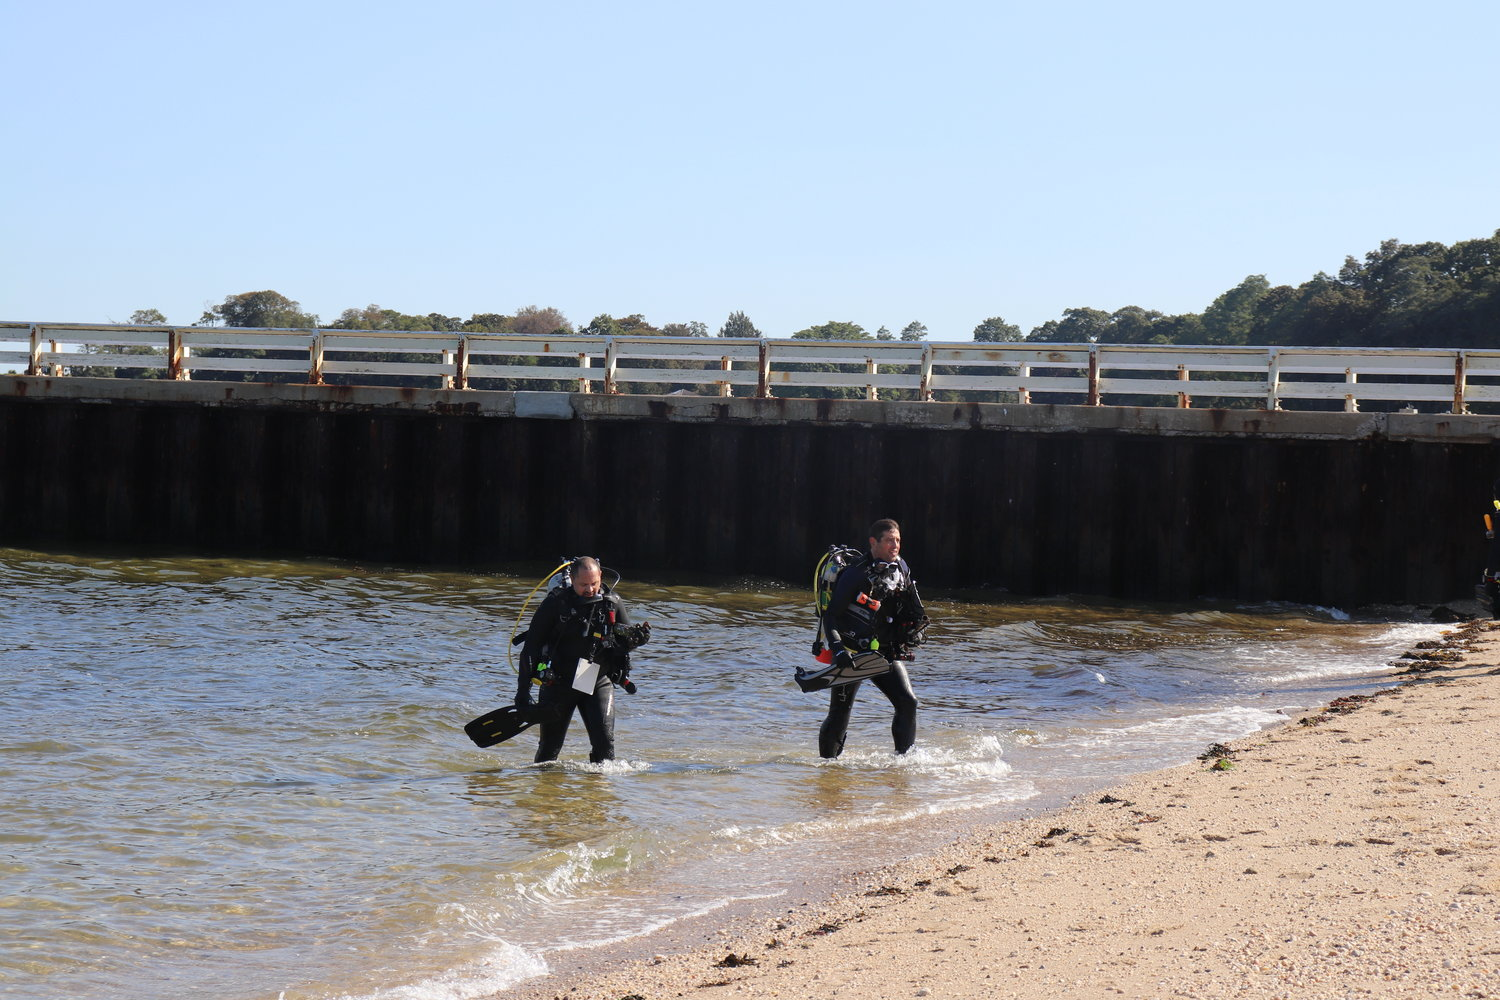 Divers from the Scuba Network made their way out of the Sound.